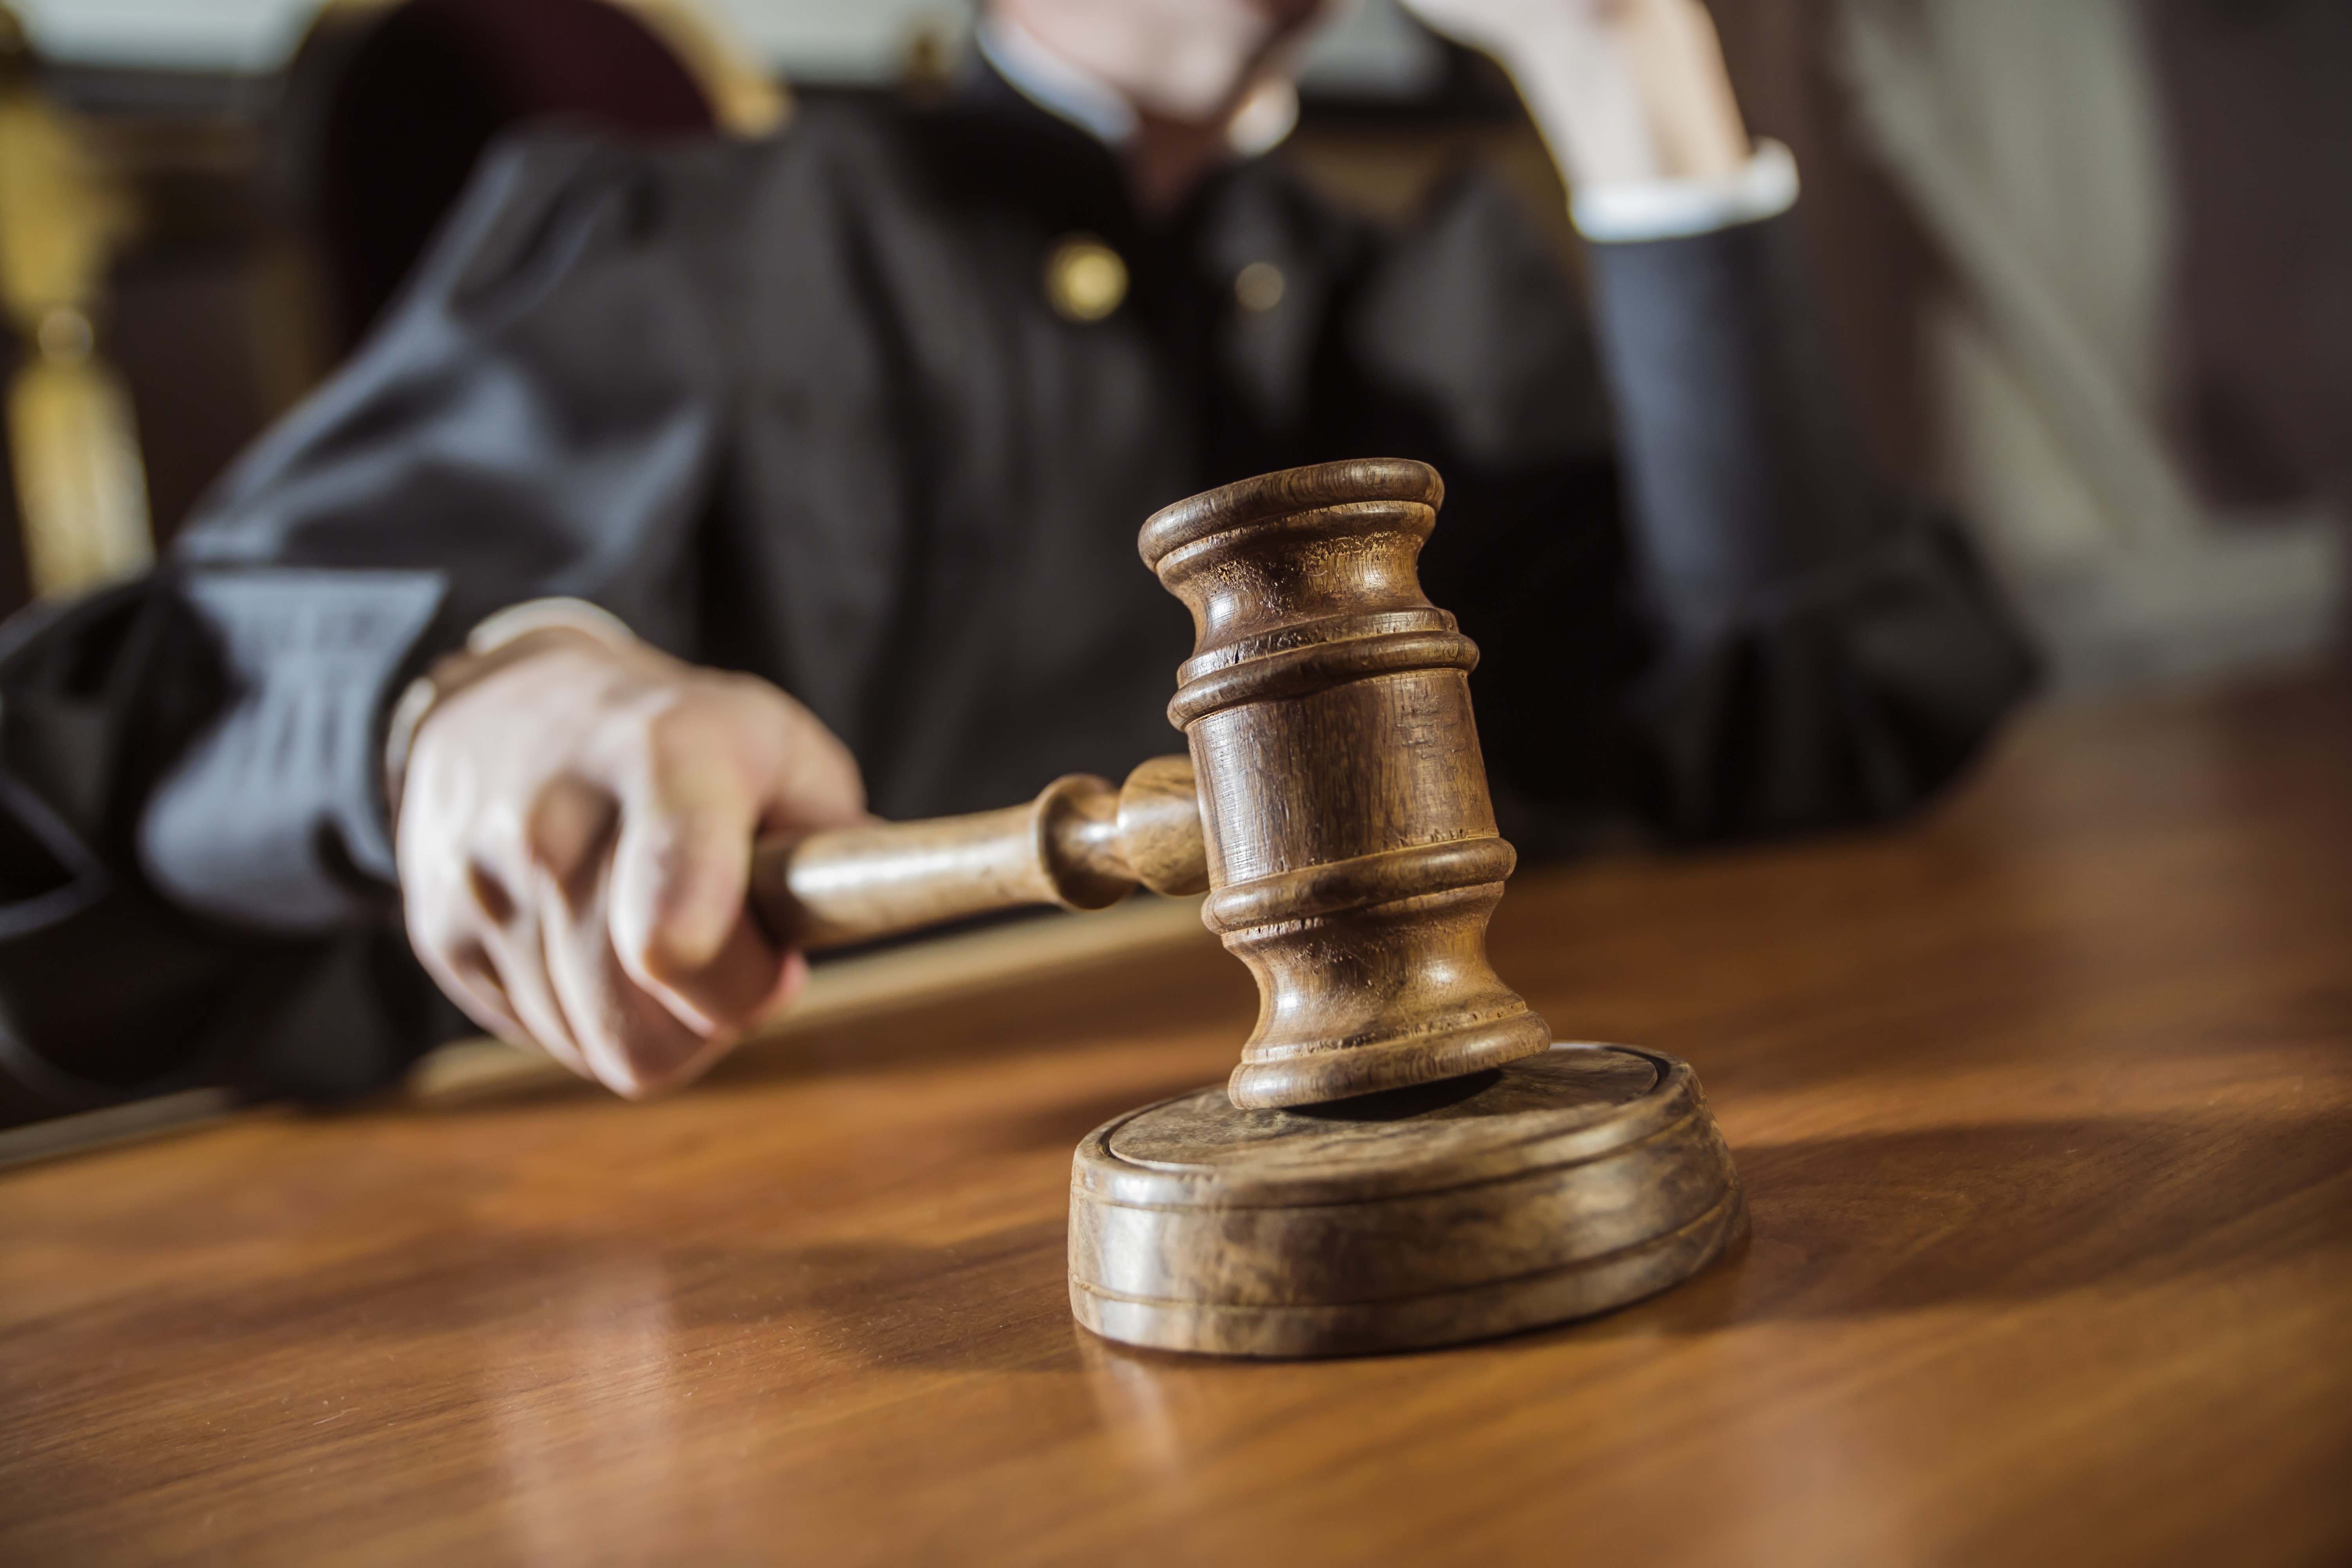 A man was sentenced to 15 years in federal prison on Nov. 7, 2019, for a series of armed robberies at suburban stores in 2012.